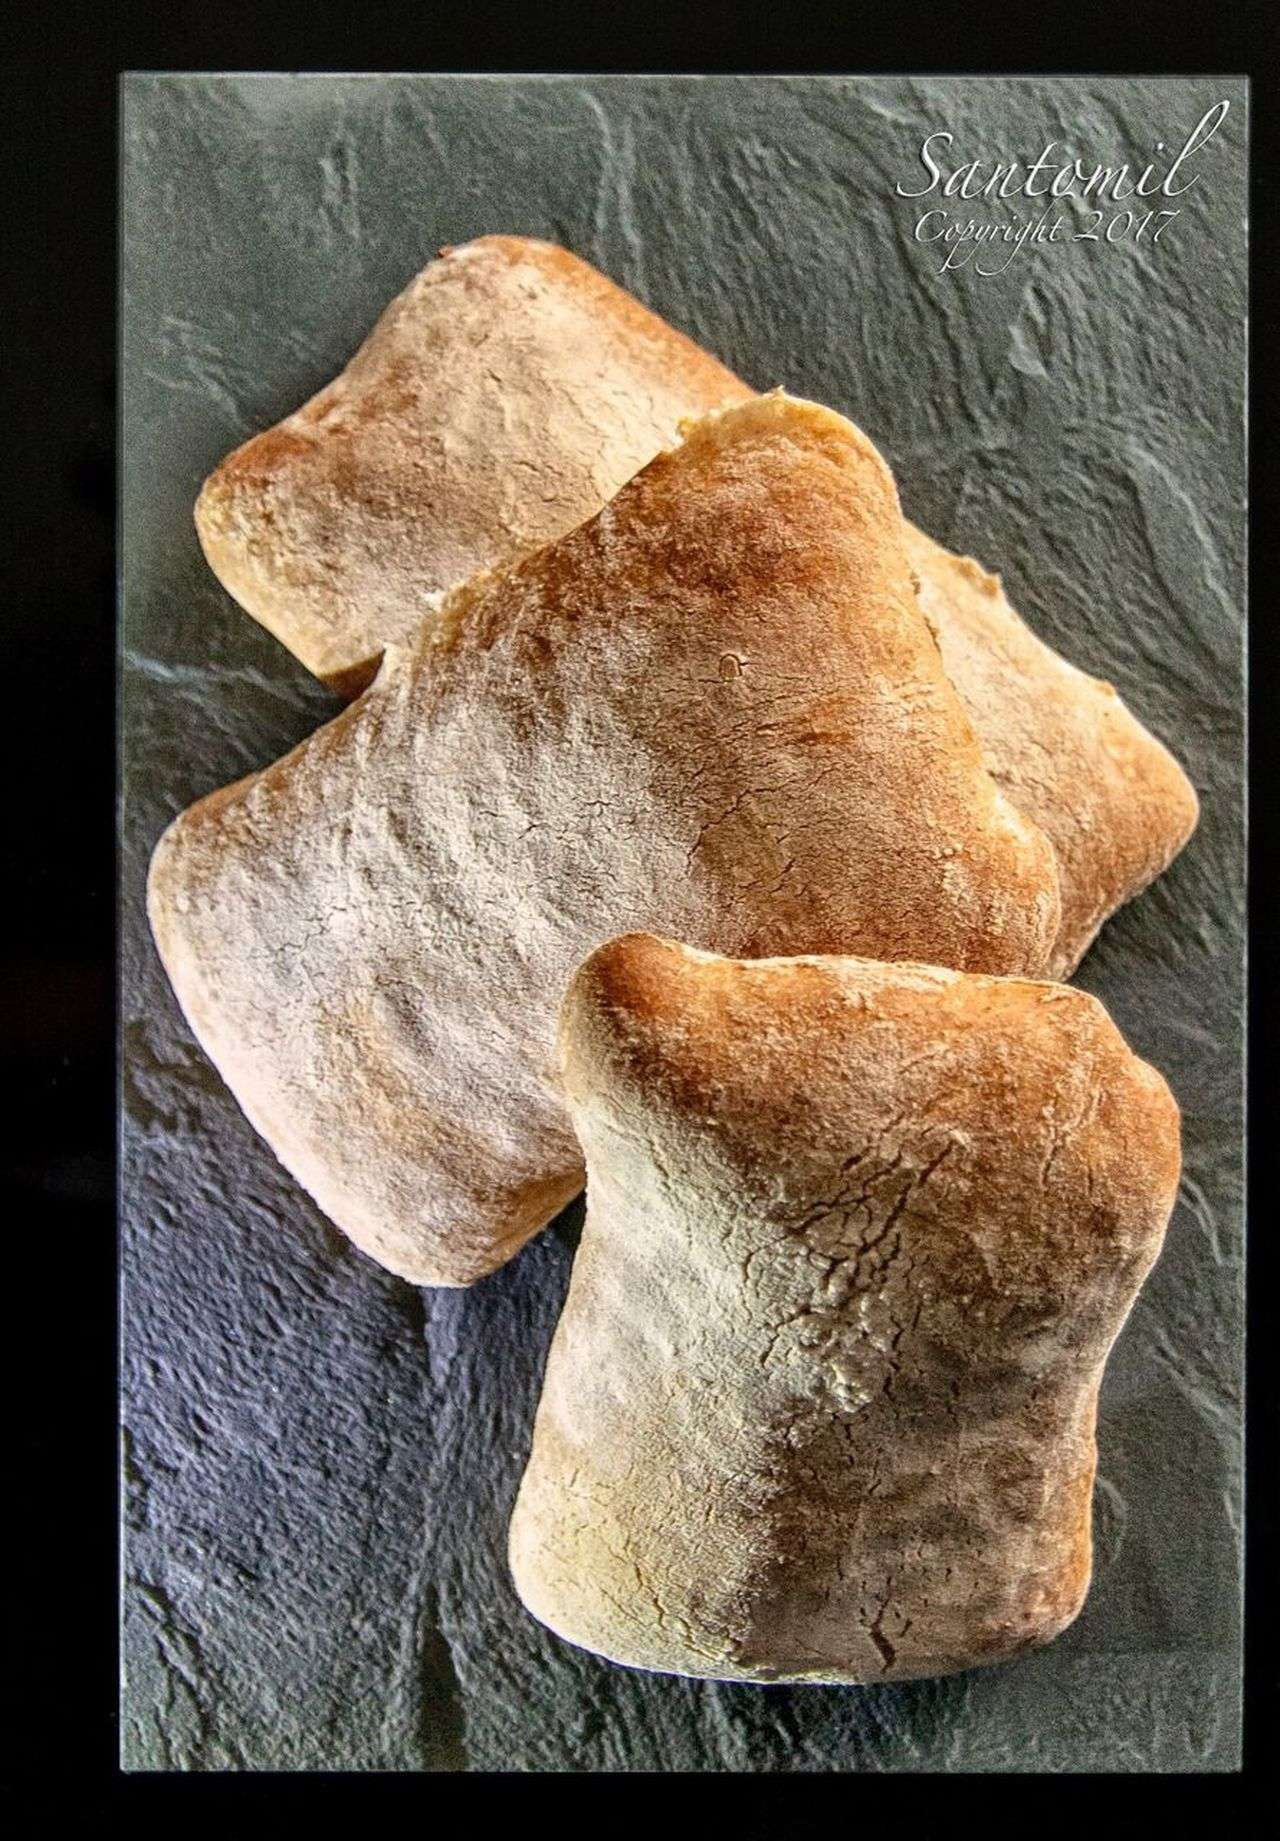 EyeEmNewHere Producto Panaderia Bread Loaf Of Bread Baked Baguette Food And Drink Baking Bread Food Bakery Pan Comidas